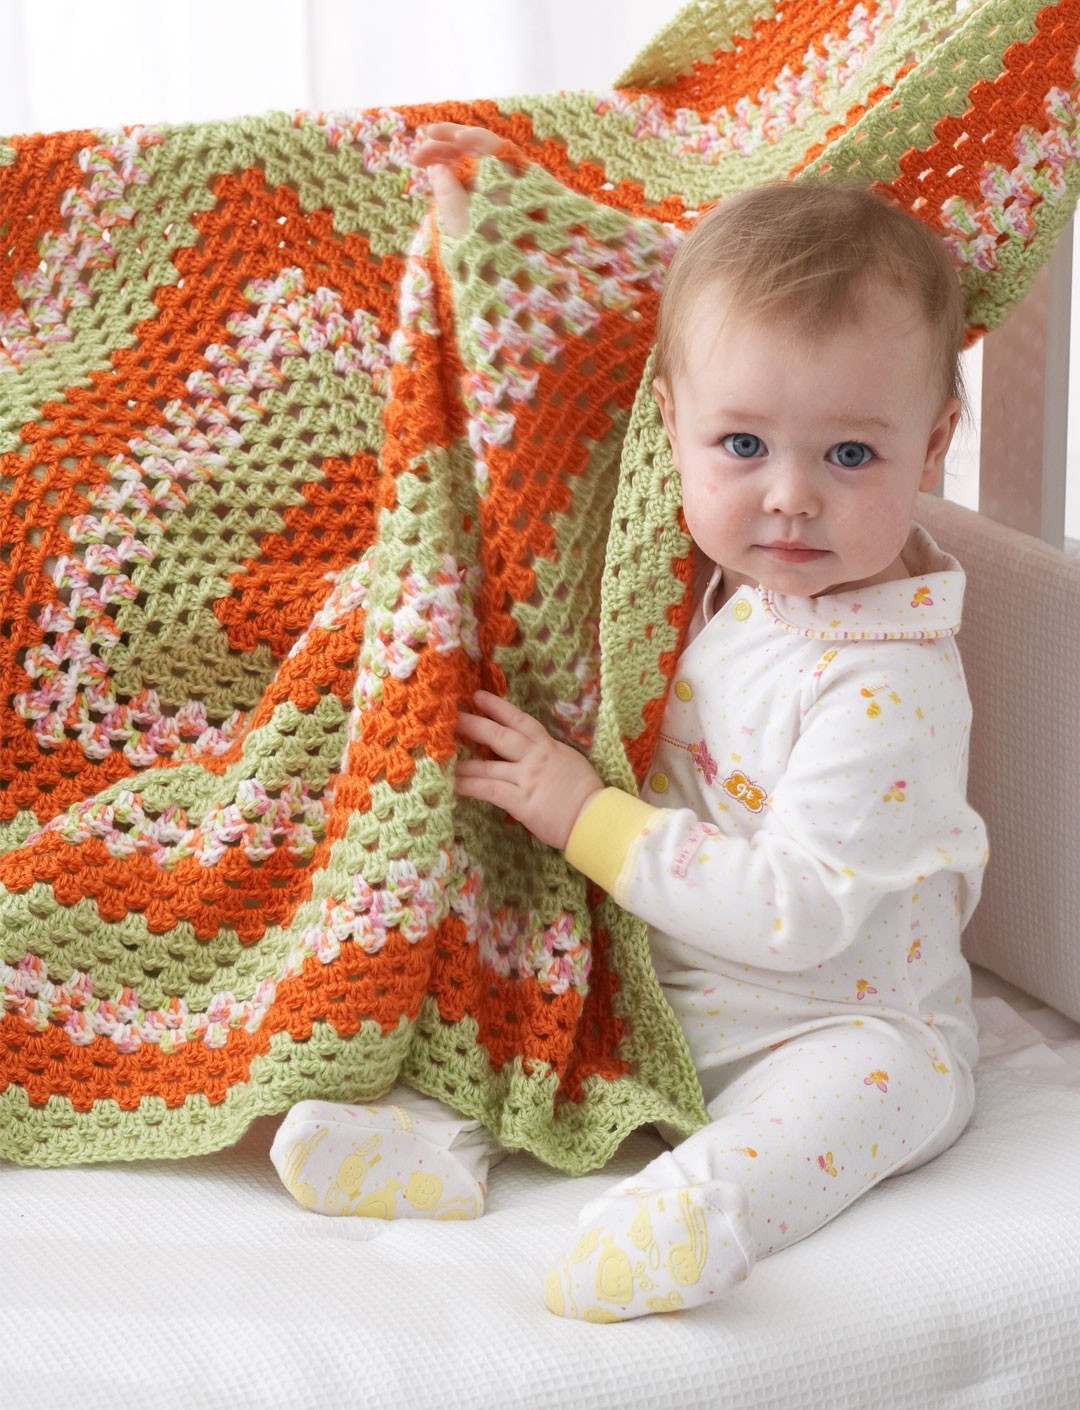 Bernat Crochet Patterns Unique Big Granny Baby Blanket In Bernat softee Baby solids Of Awesome 45 Photos Bernat Crochet Patterns